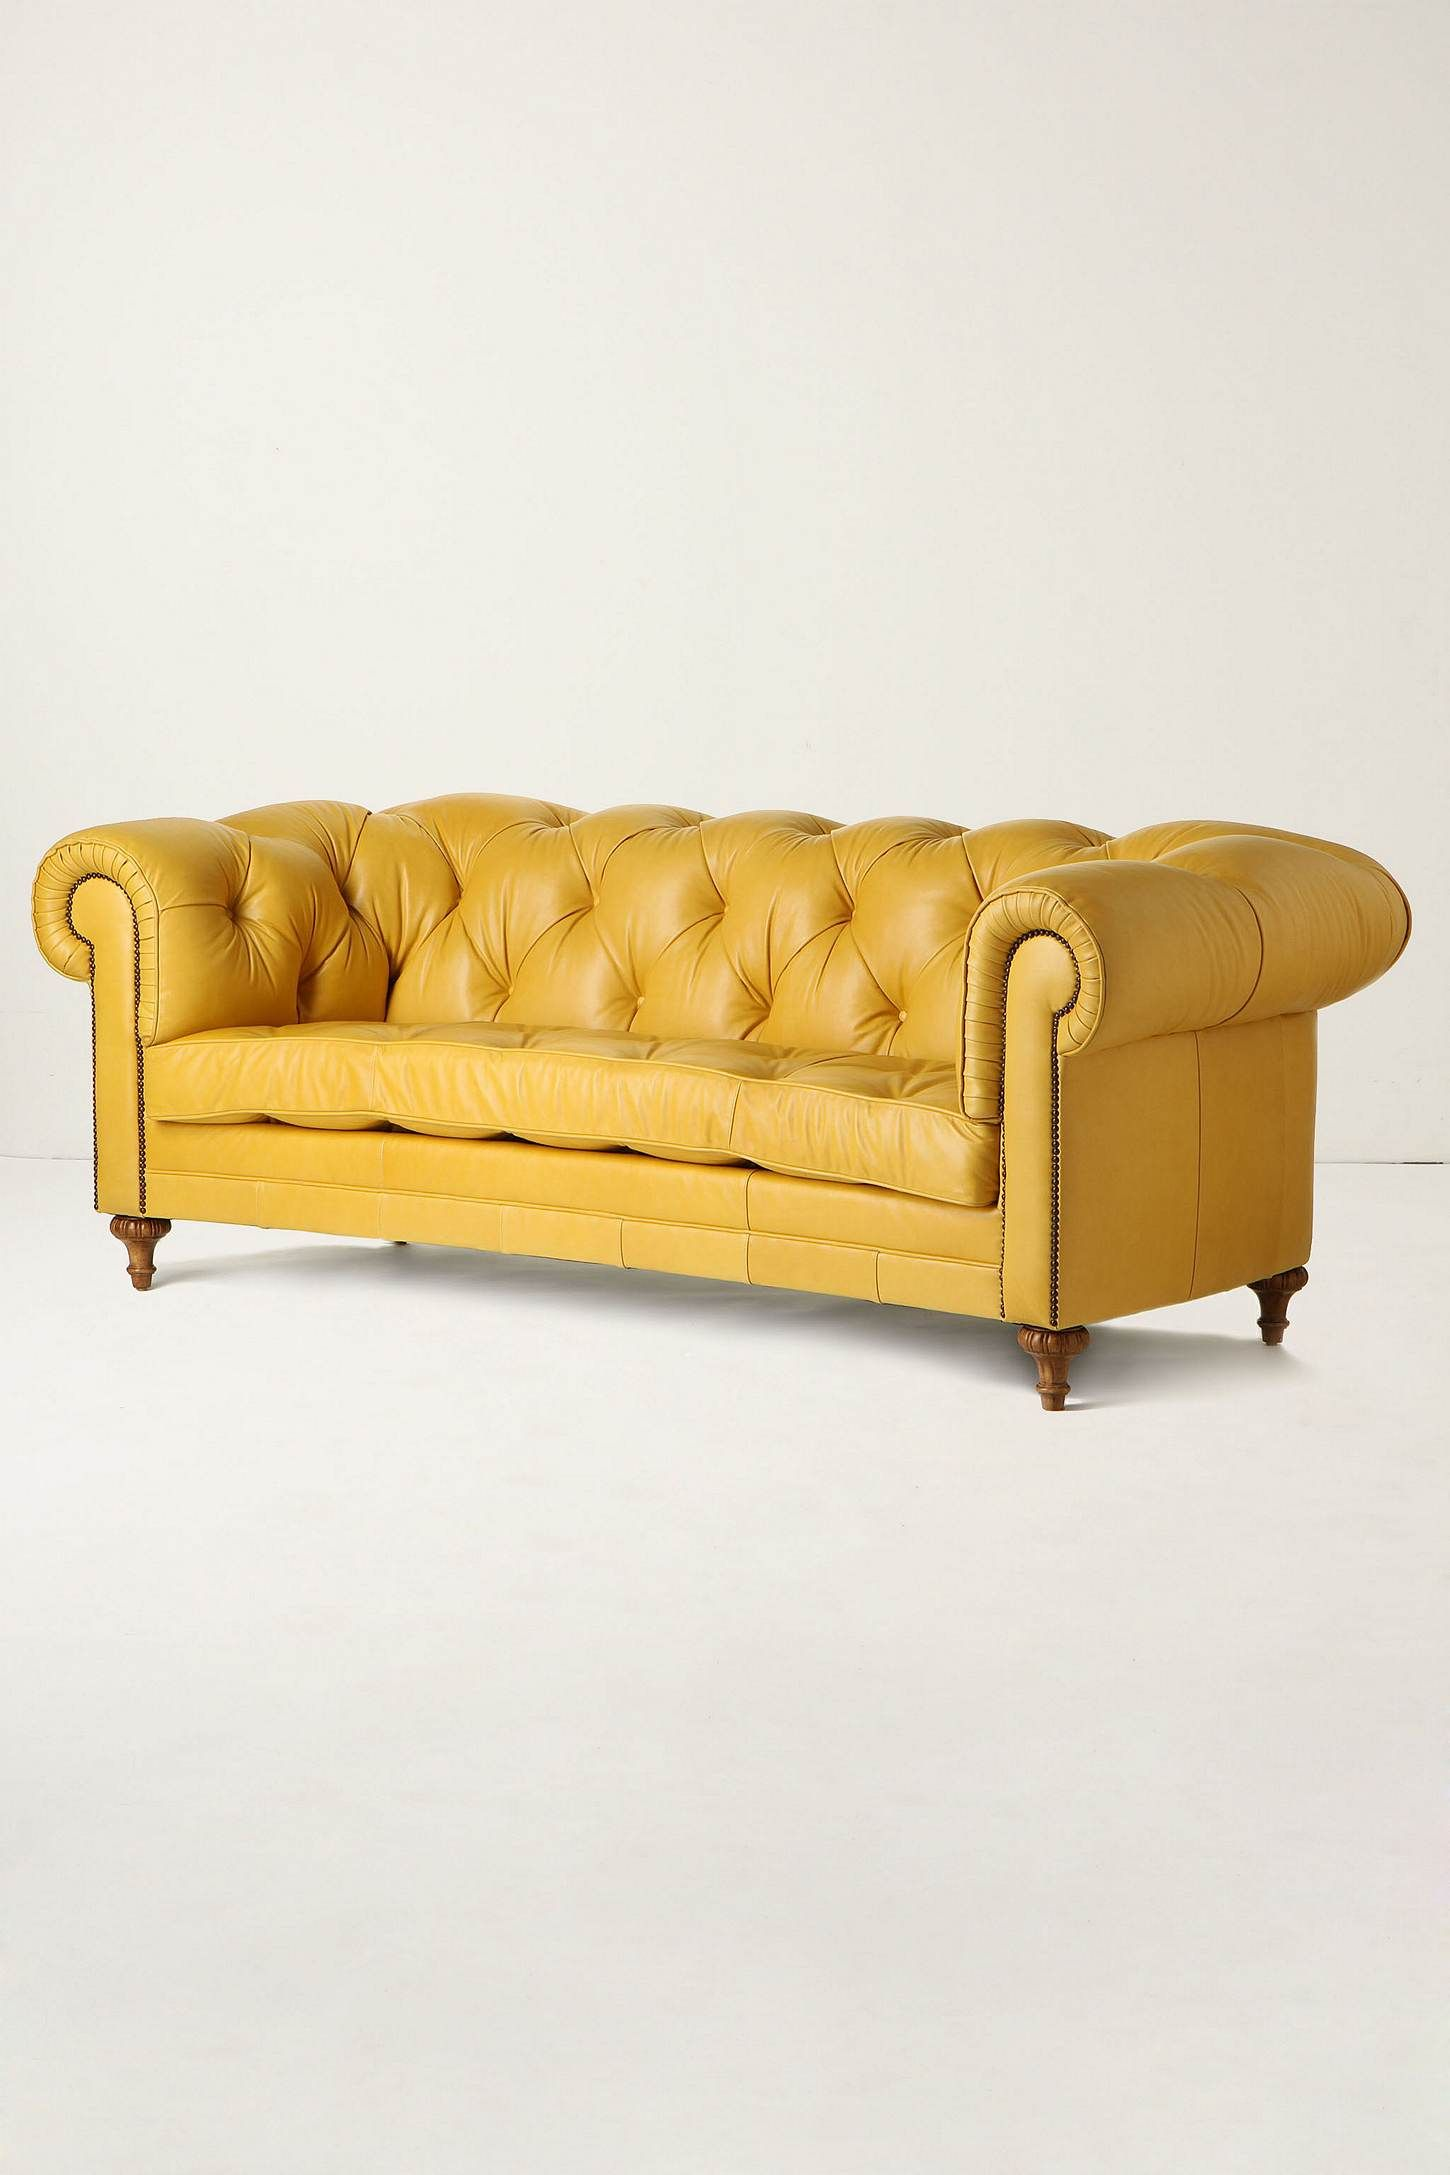 Old Couches Mustard Yellow Will Never Get Old For Me Furniture Pinterest